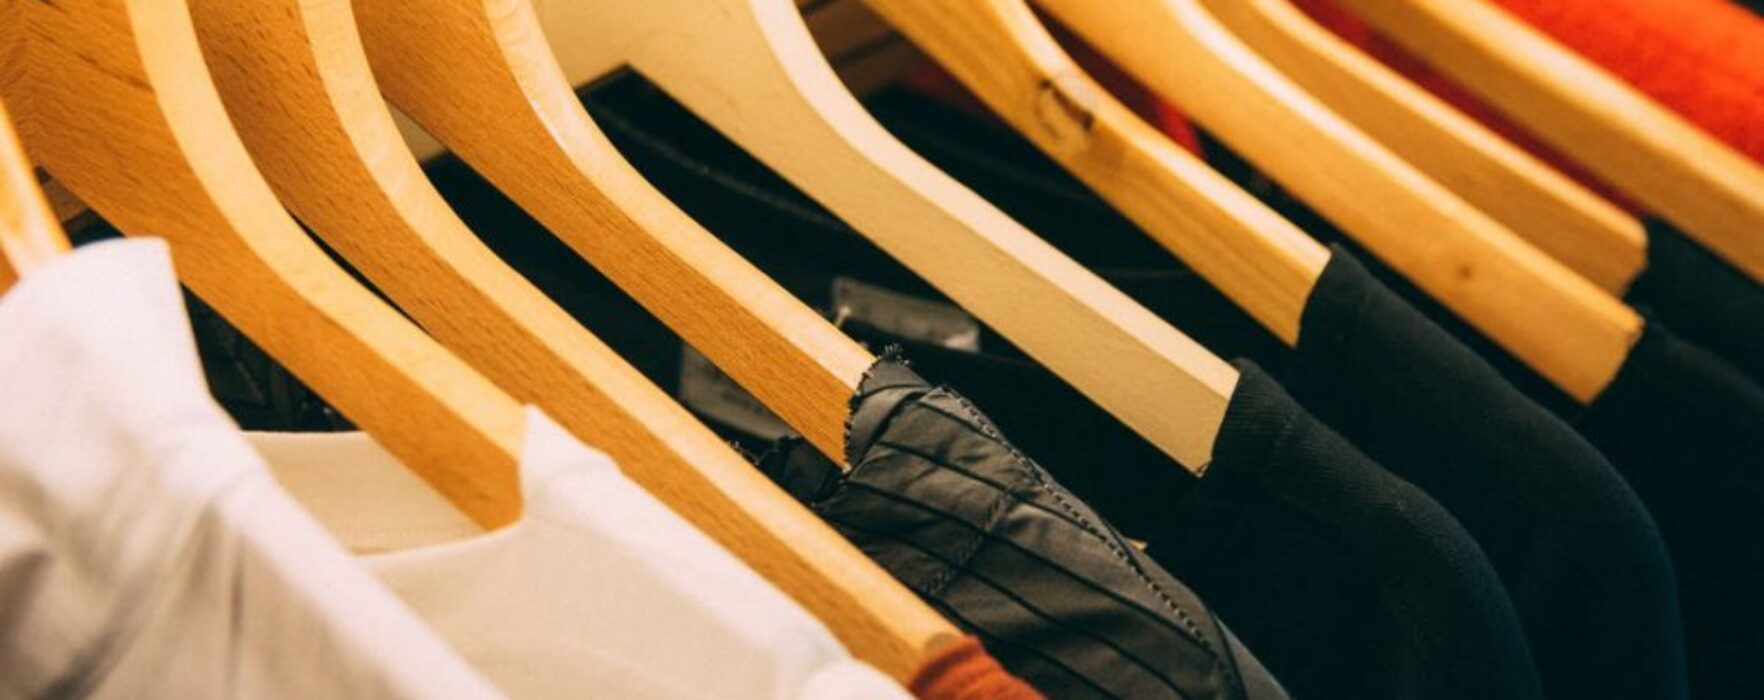 Shoppers are now deciding what to buy based on how sustainable a retailer is